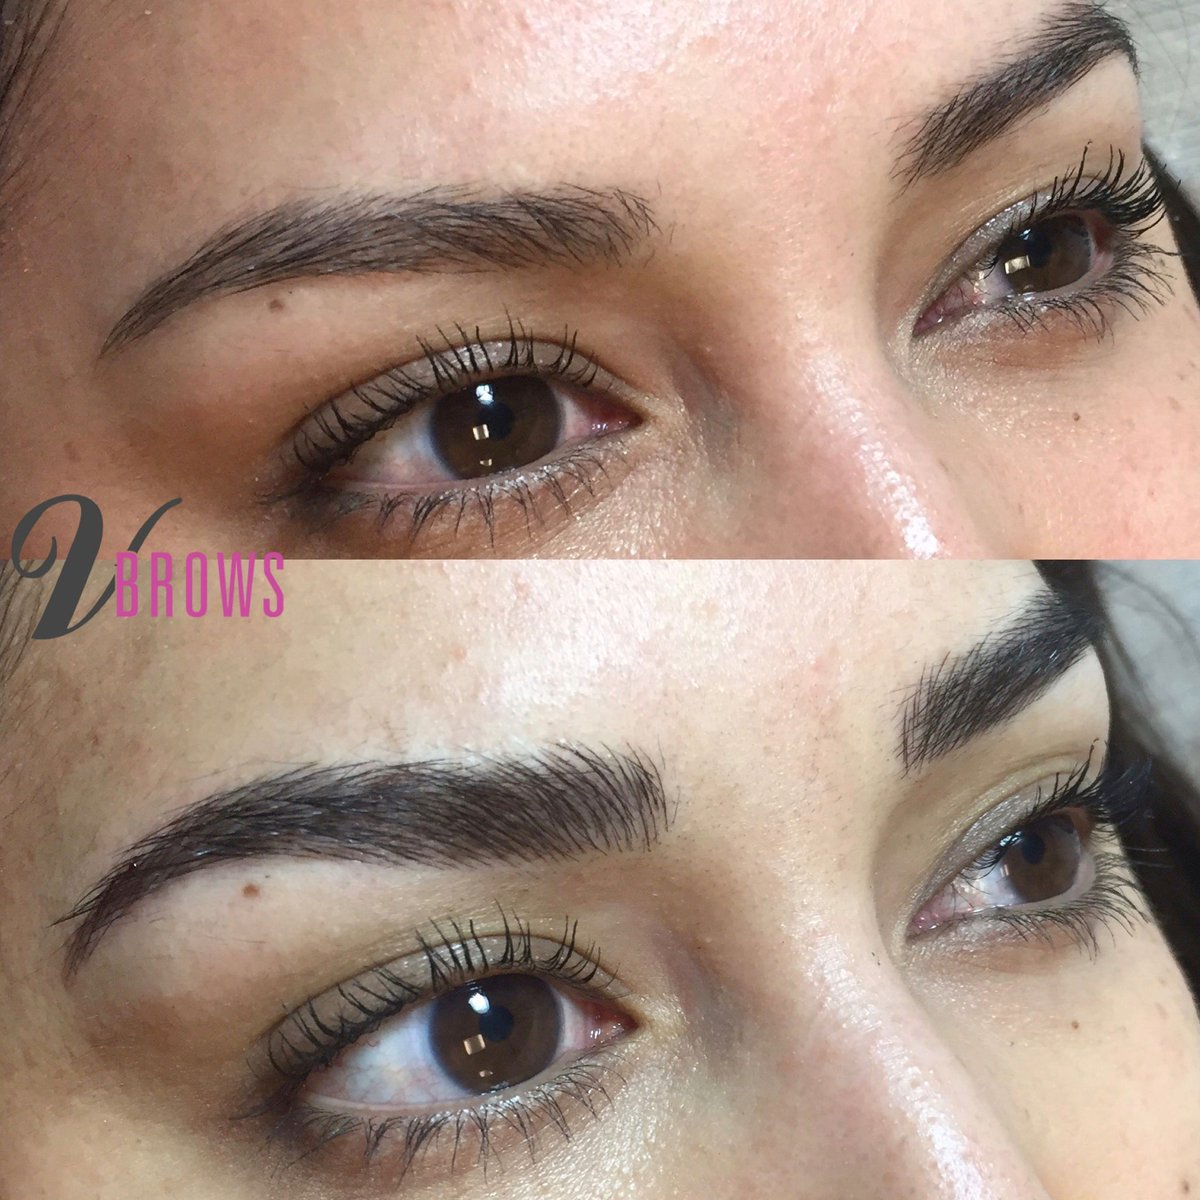 V Brows on Twitter: